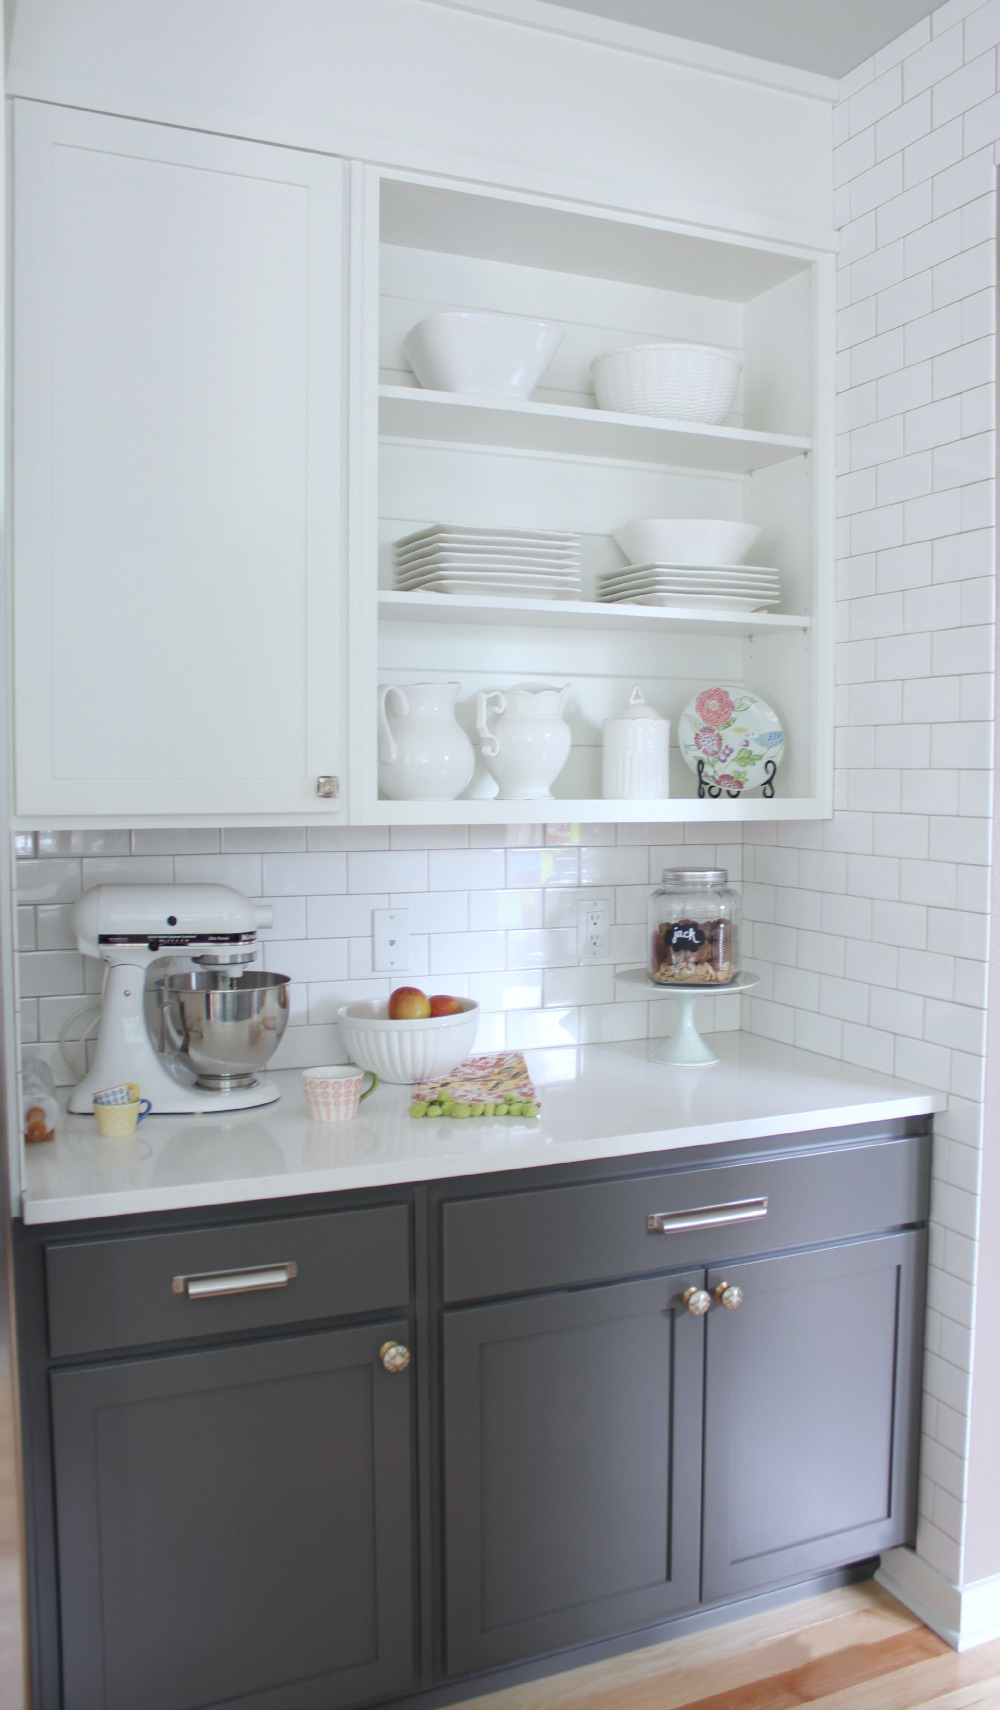 White Upper Gray Lower Kitchen Cabinets